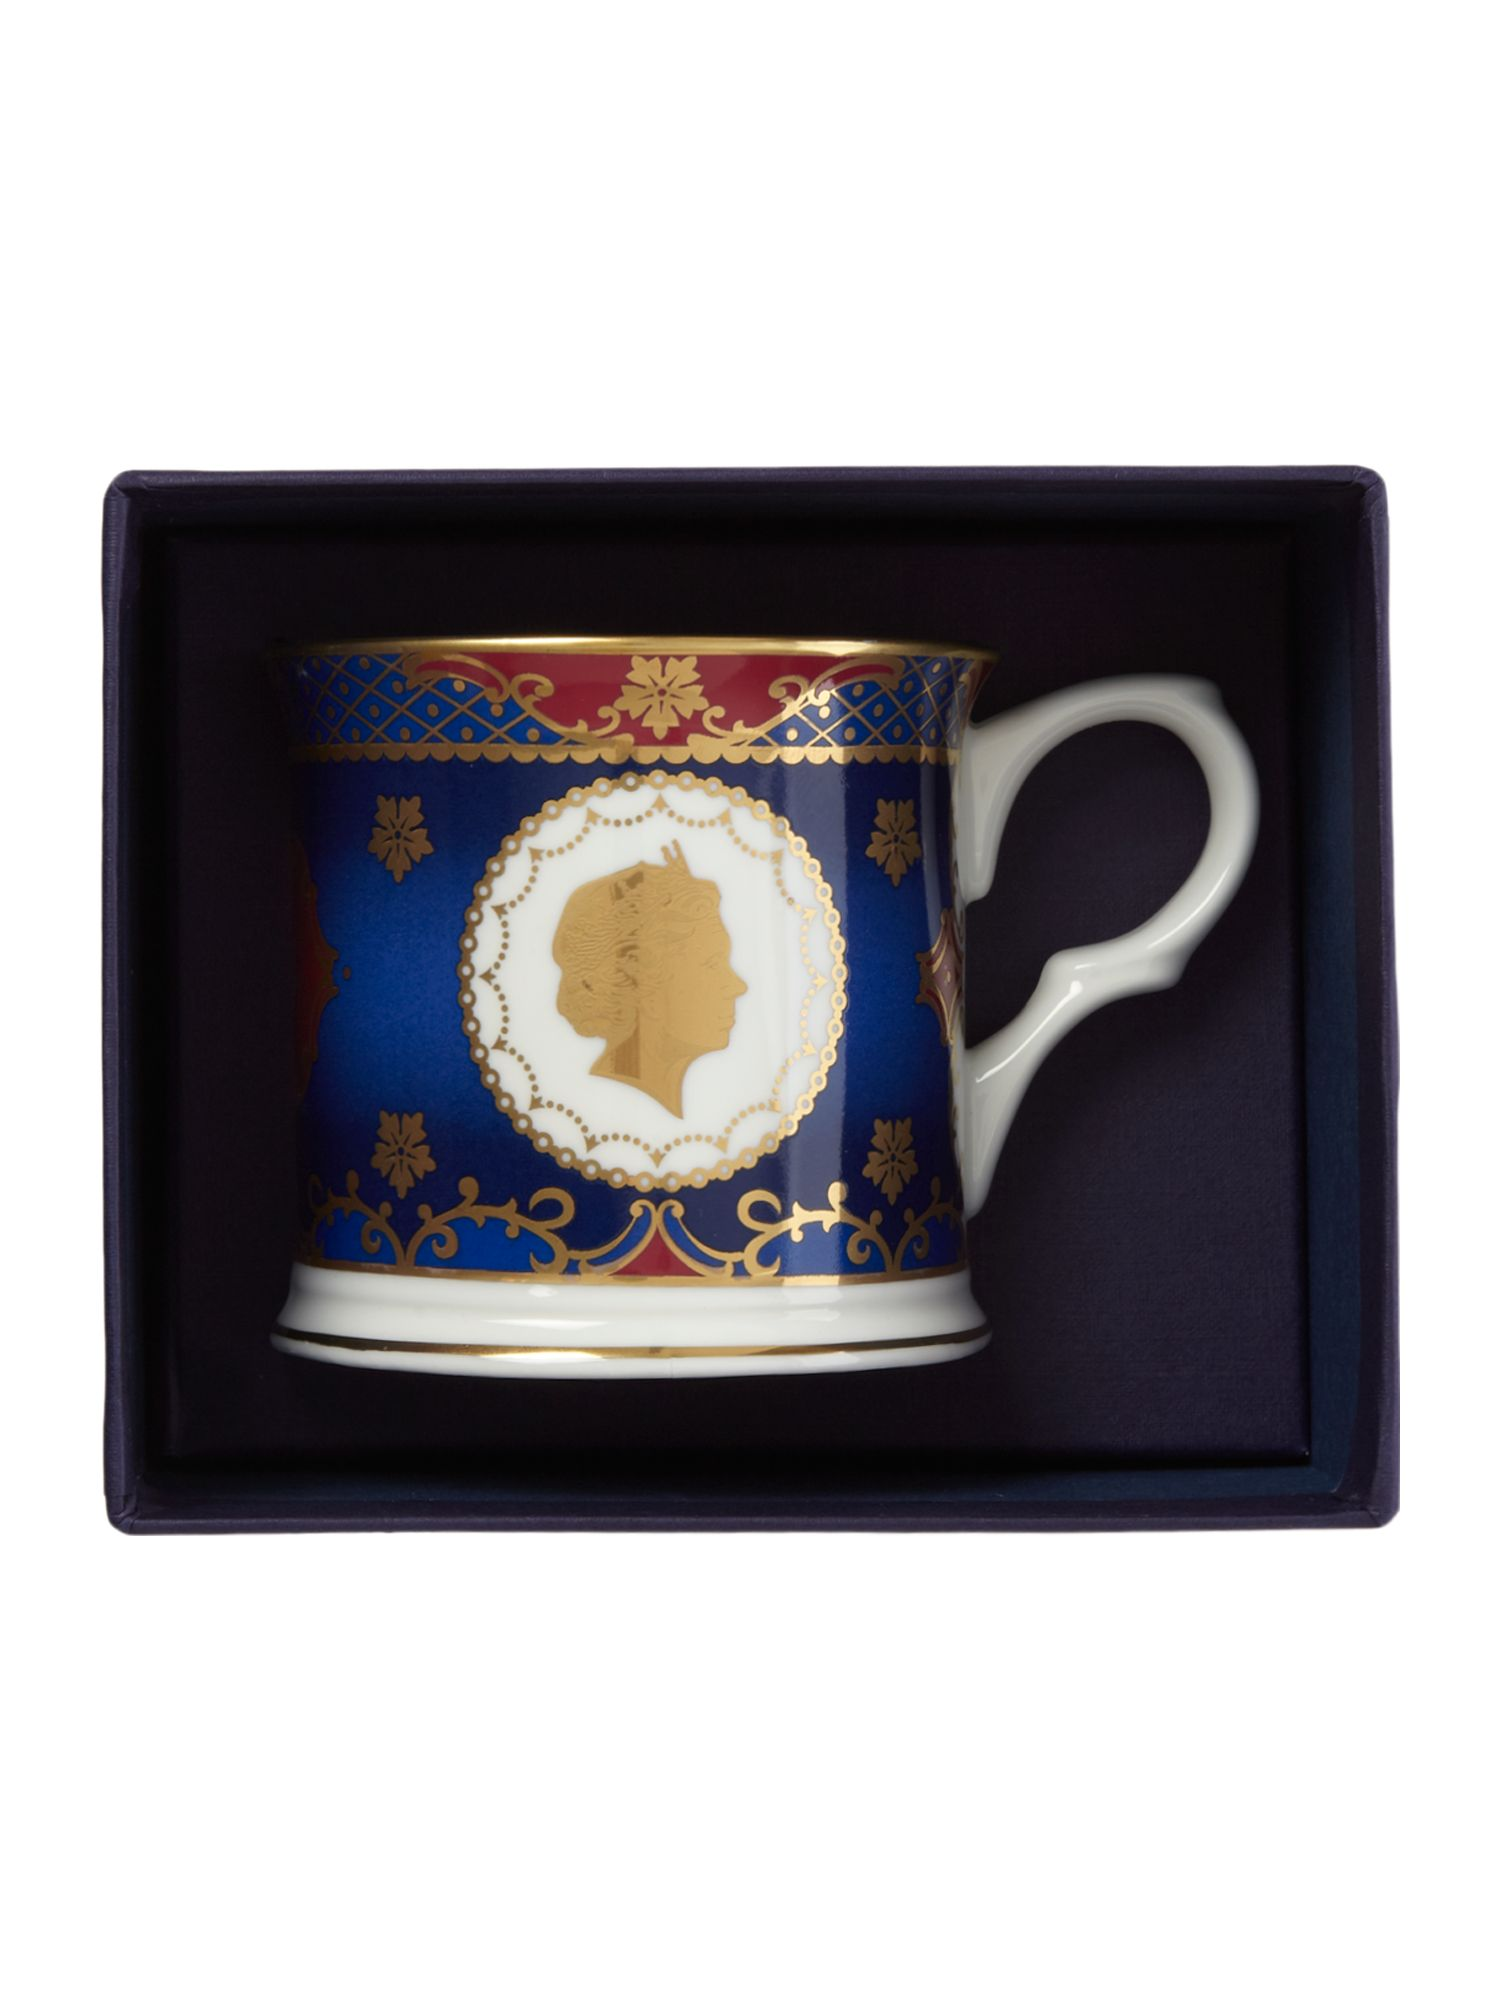 Royal coronation tankard